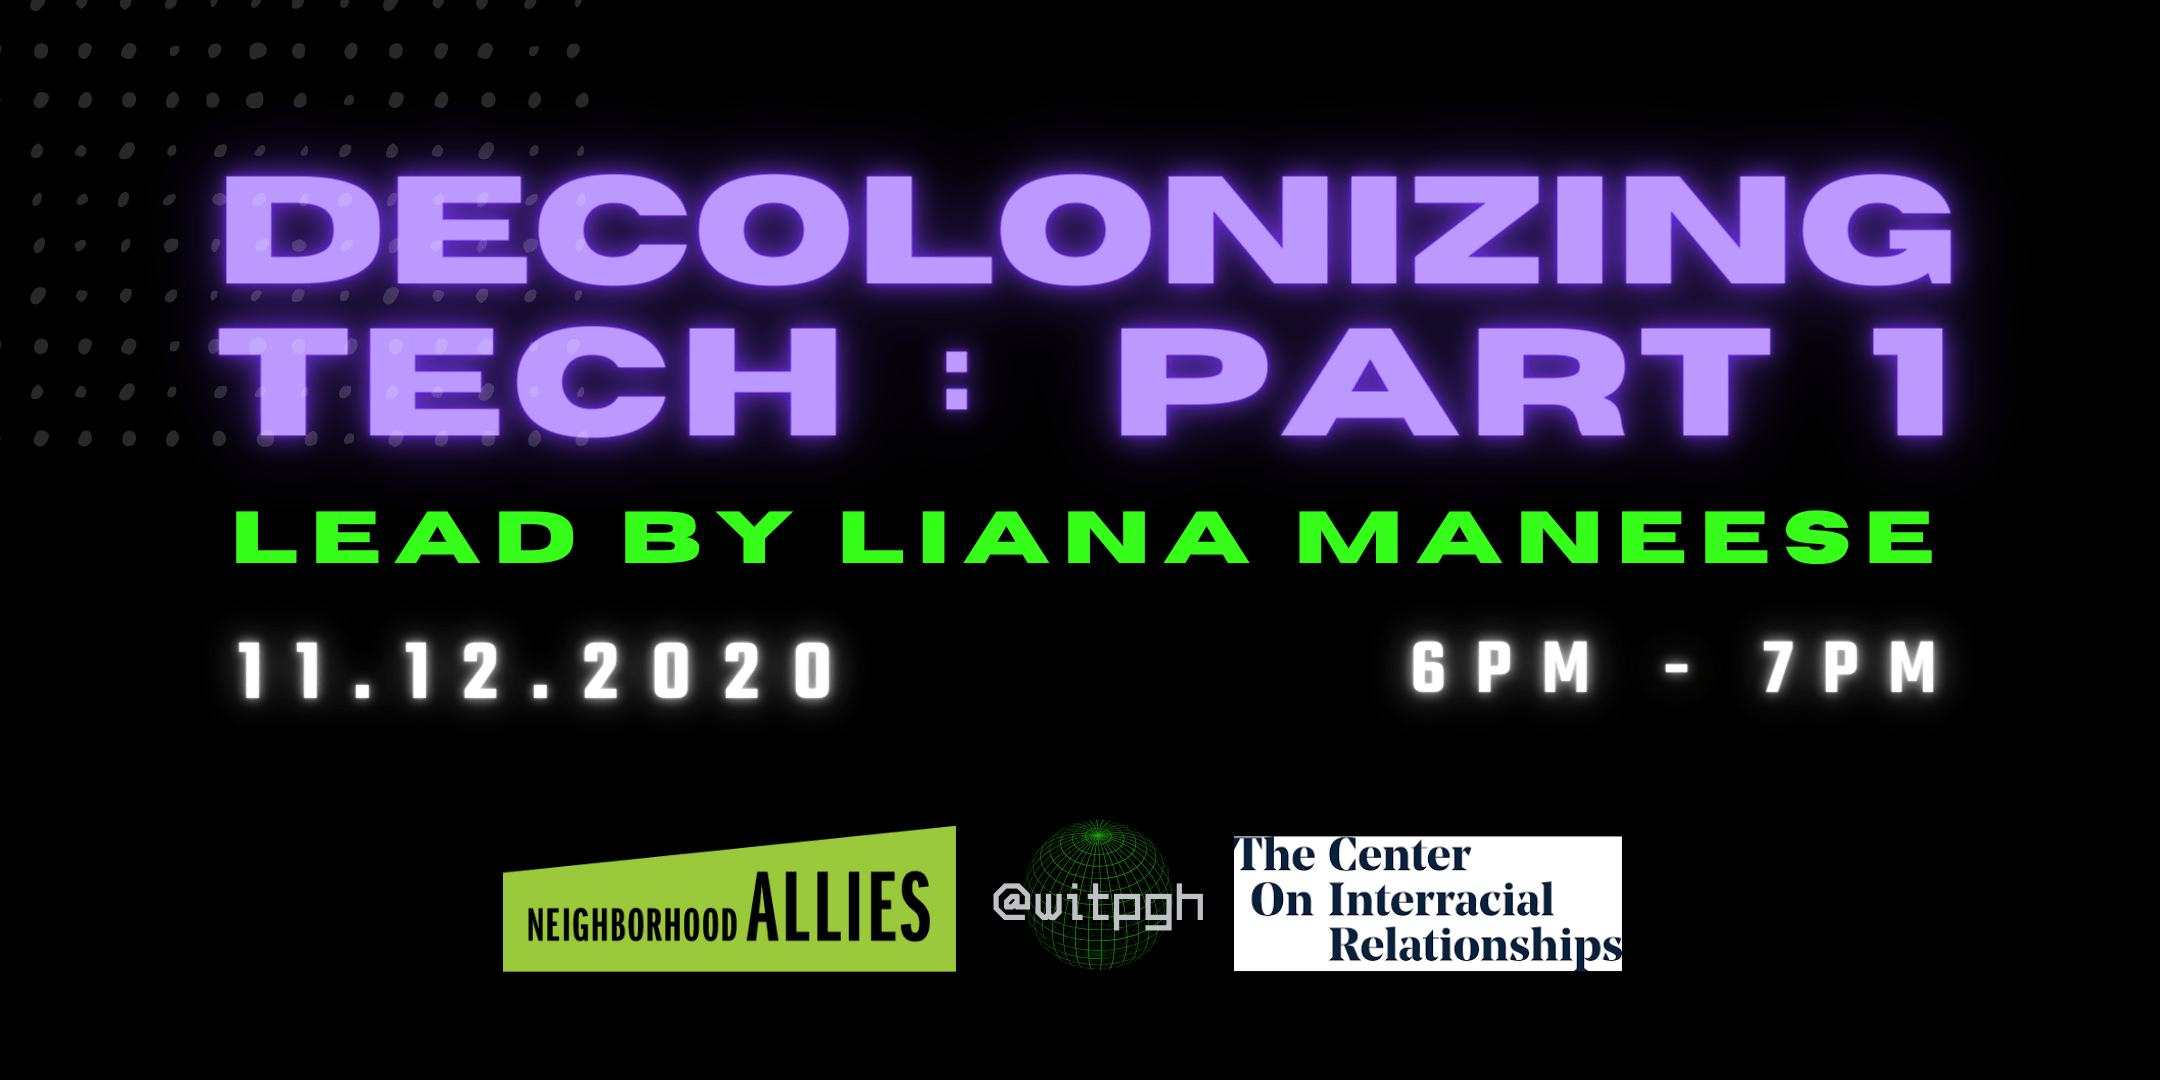 Decolonizing Tech Part 1 with Liana maneese, 11/12 from 6 pm to 7pm